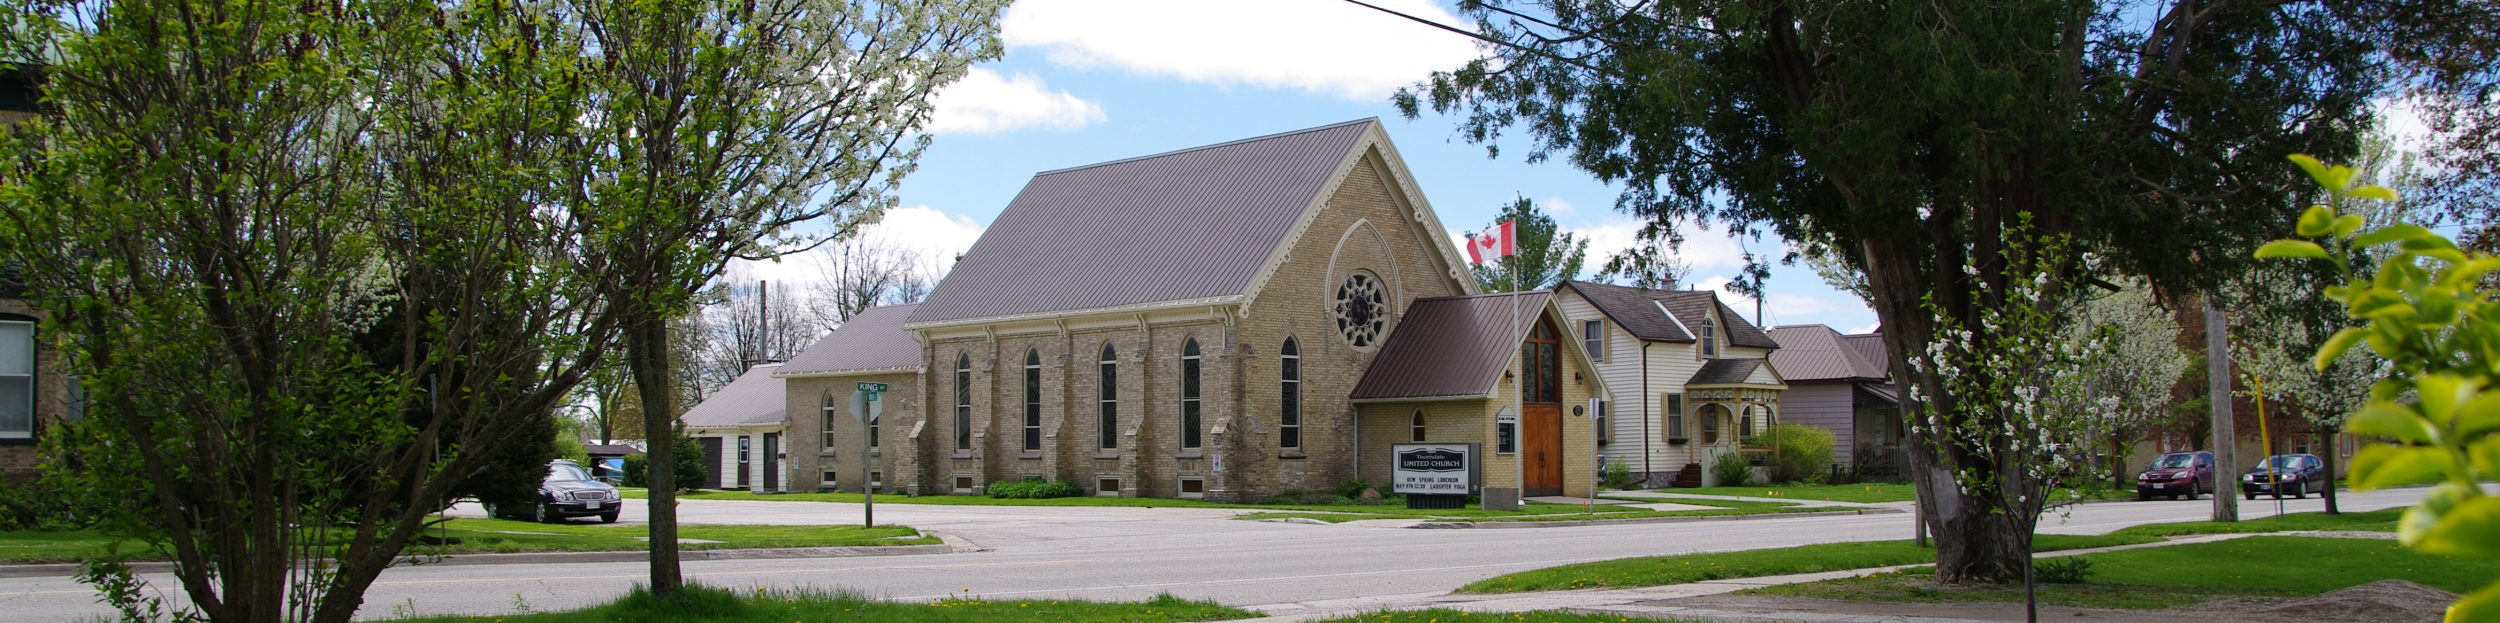 Thorndale-Zion United Church